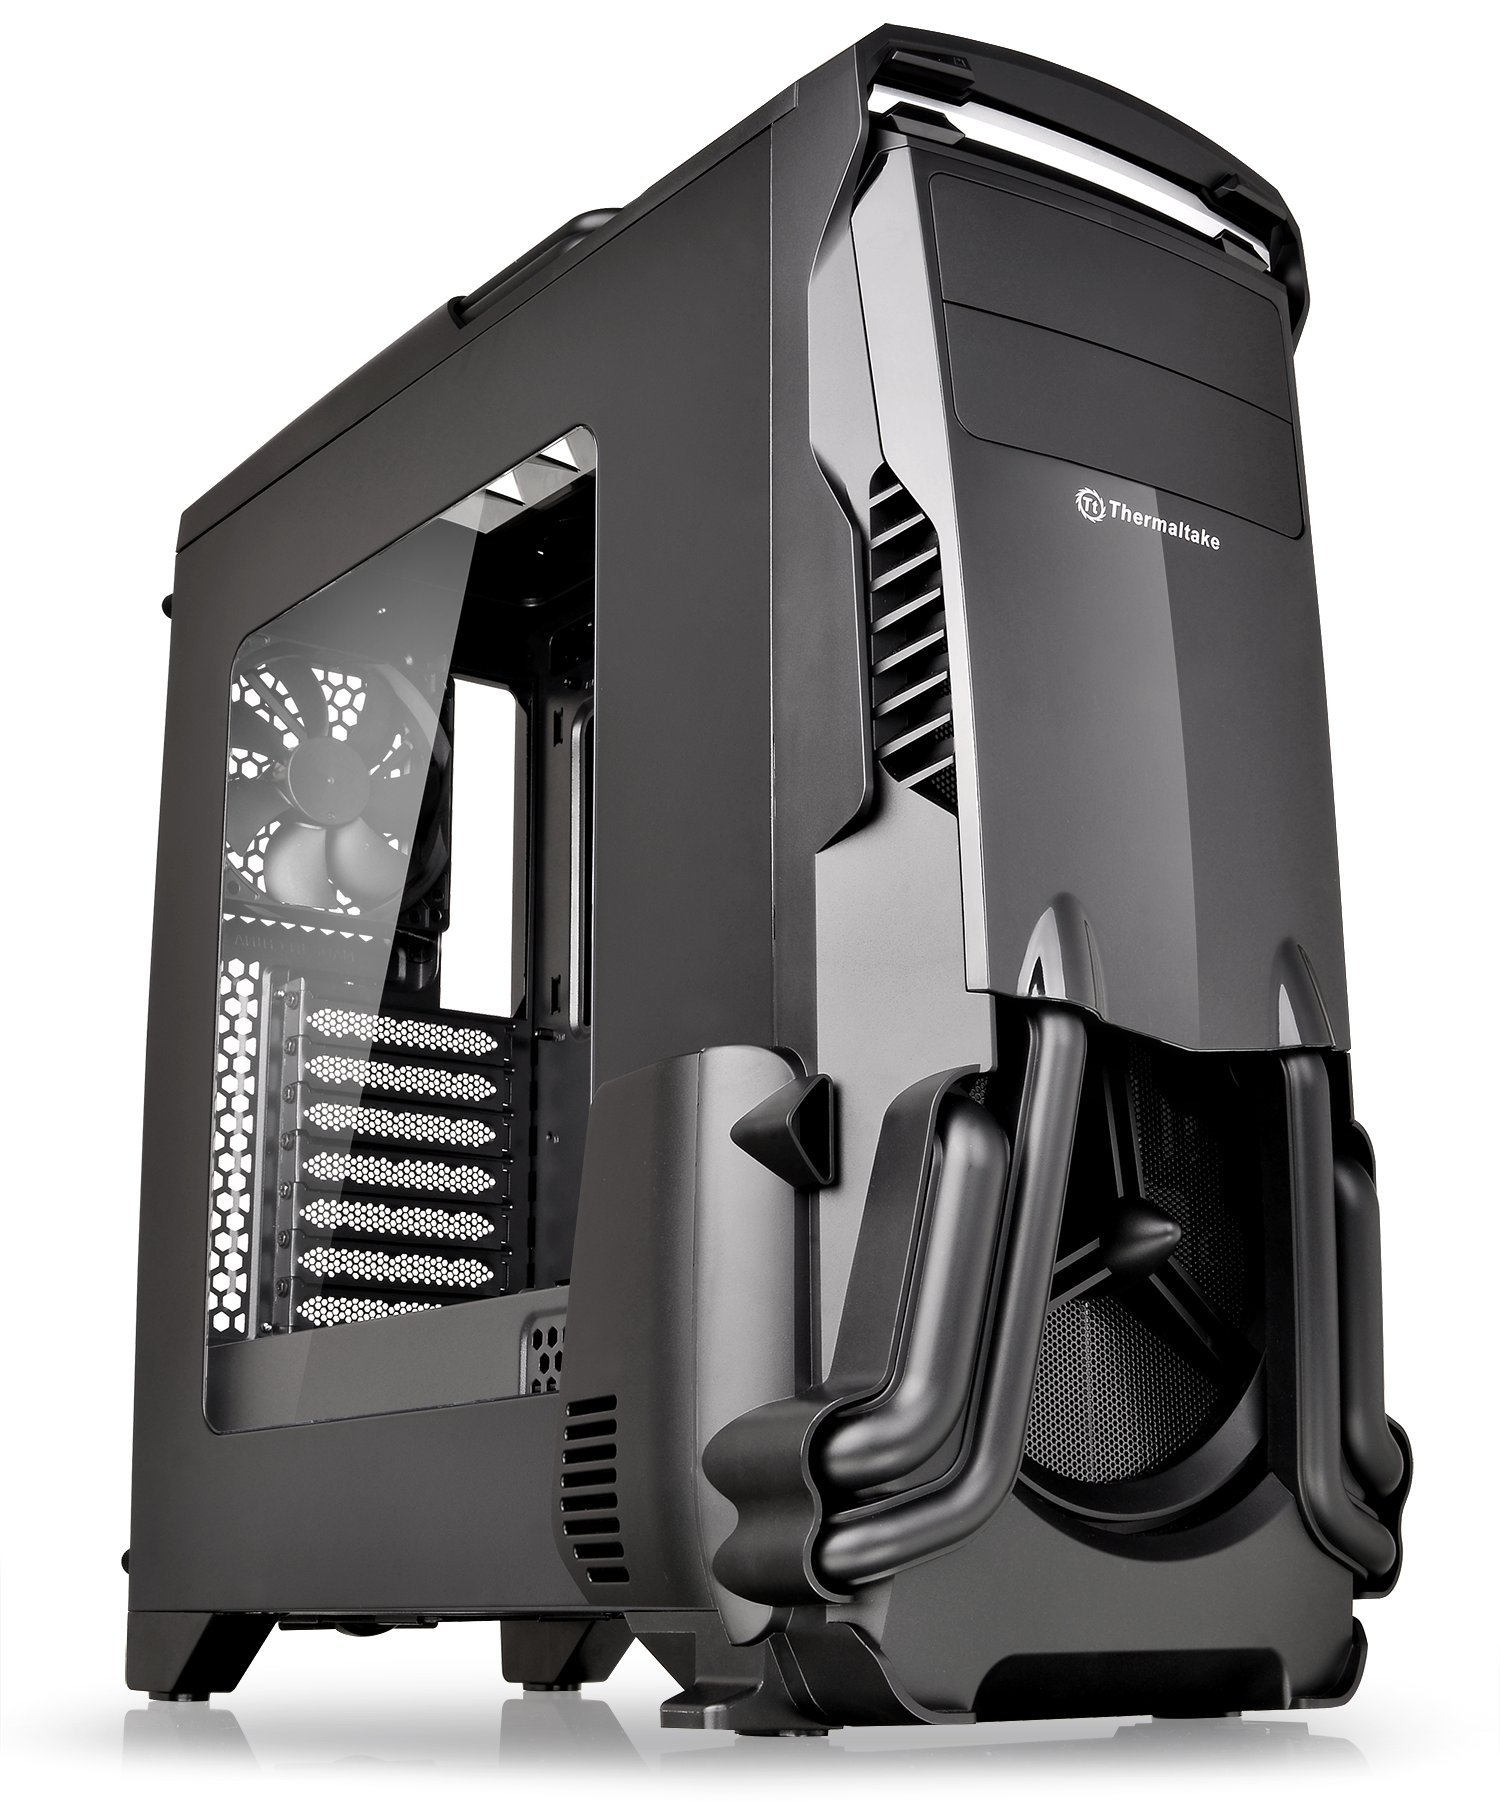 Thermaltake Versa N24 Black ATX Mid Tower Gaming Computer Case Chassis with Power Supply Cover, 120mm Rear Fan preinstalled. CA-1G1-00M1WN-00 by Thermaltake (Image #8)